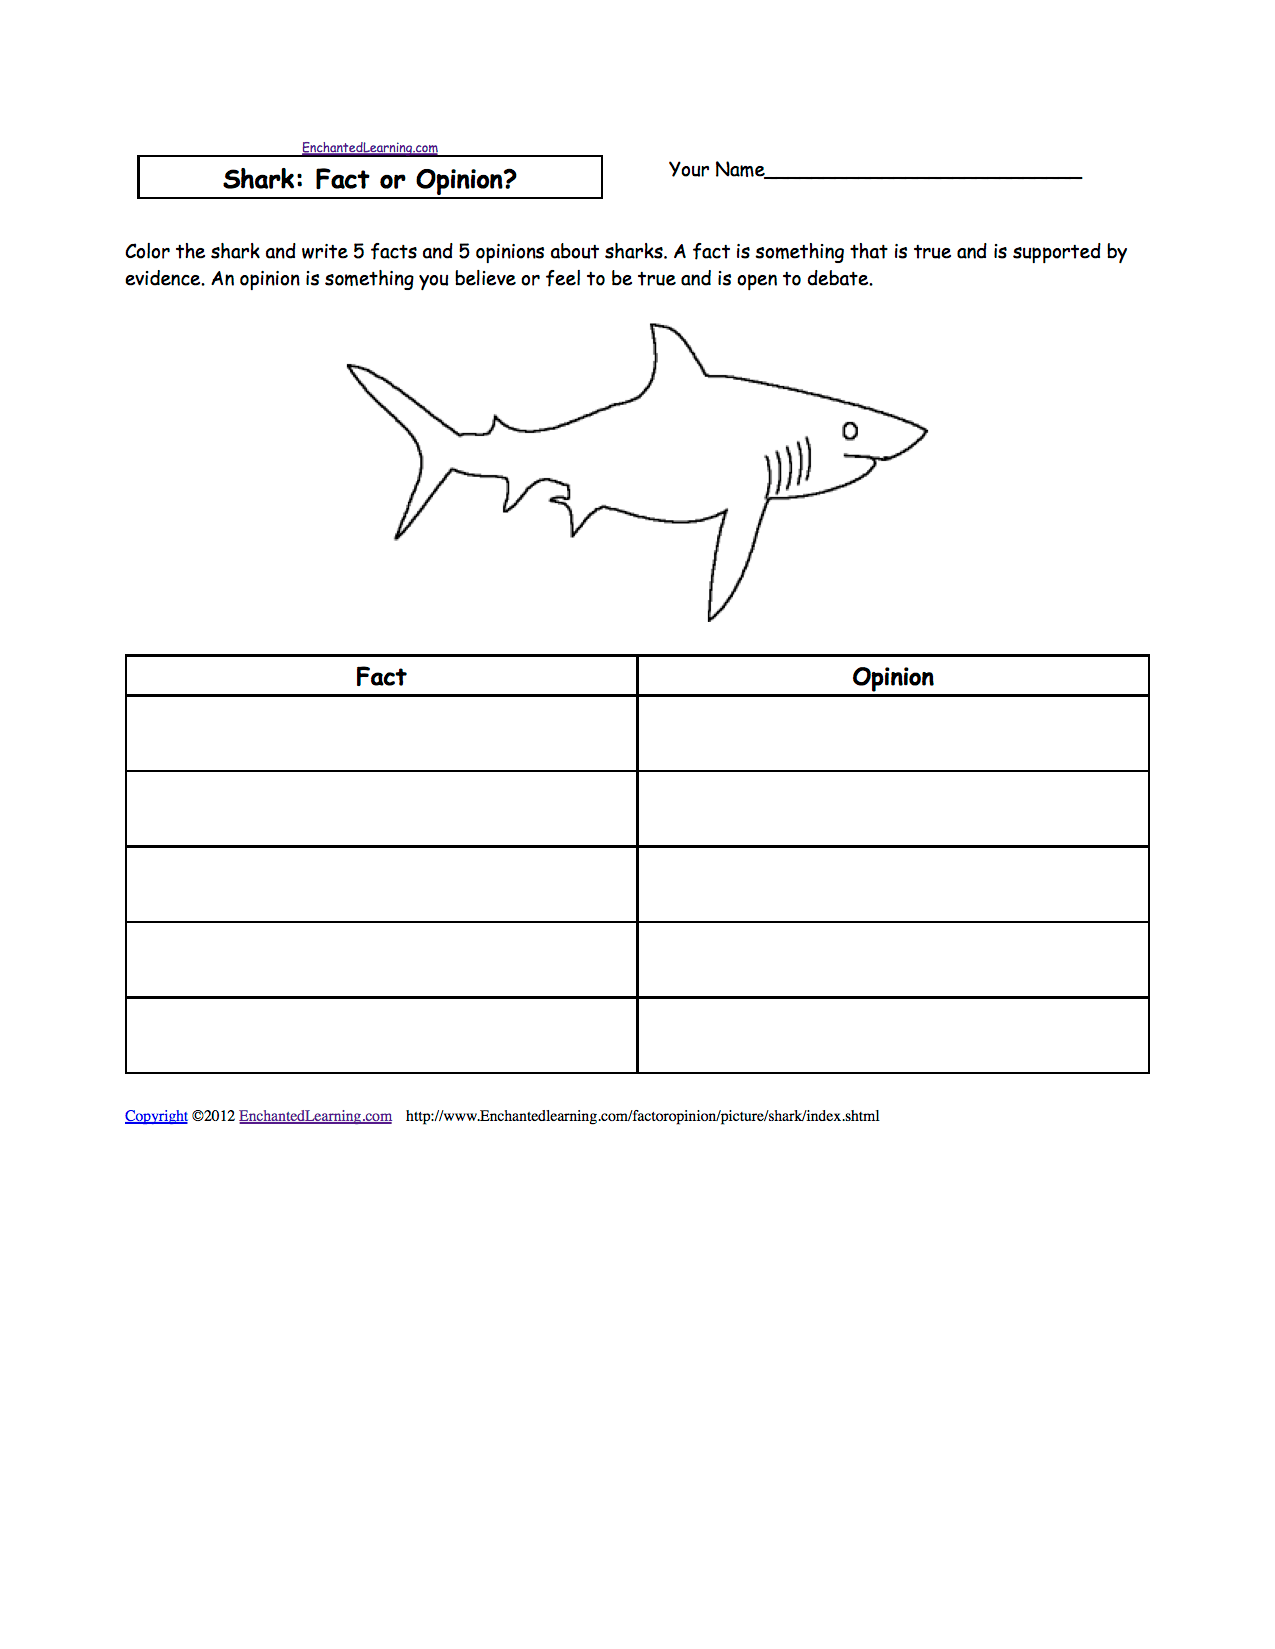 Cloze Activities 6th Gradecloze Activities 6th Grade Dolch Word List Resourcesoceans And